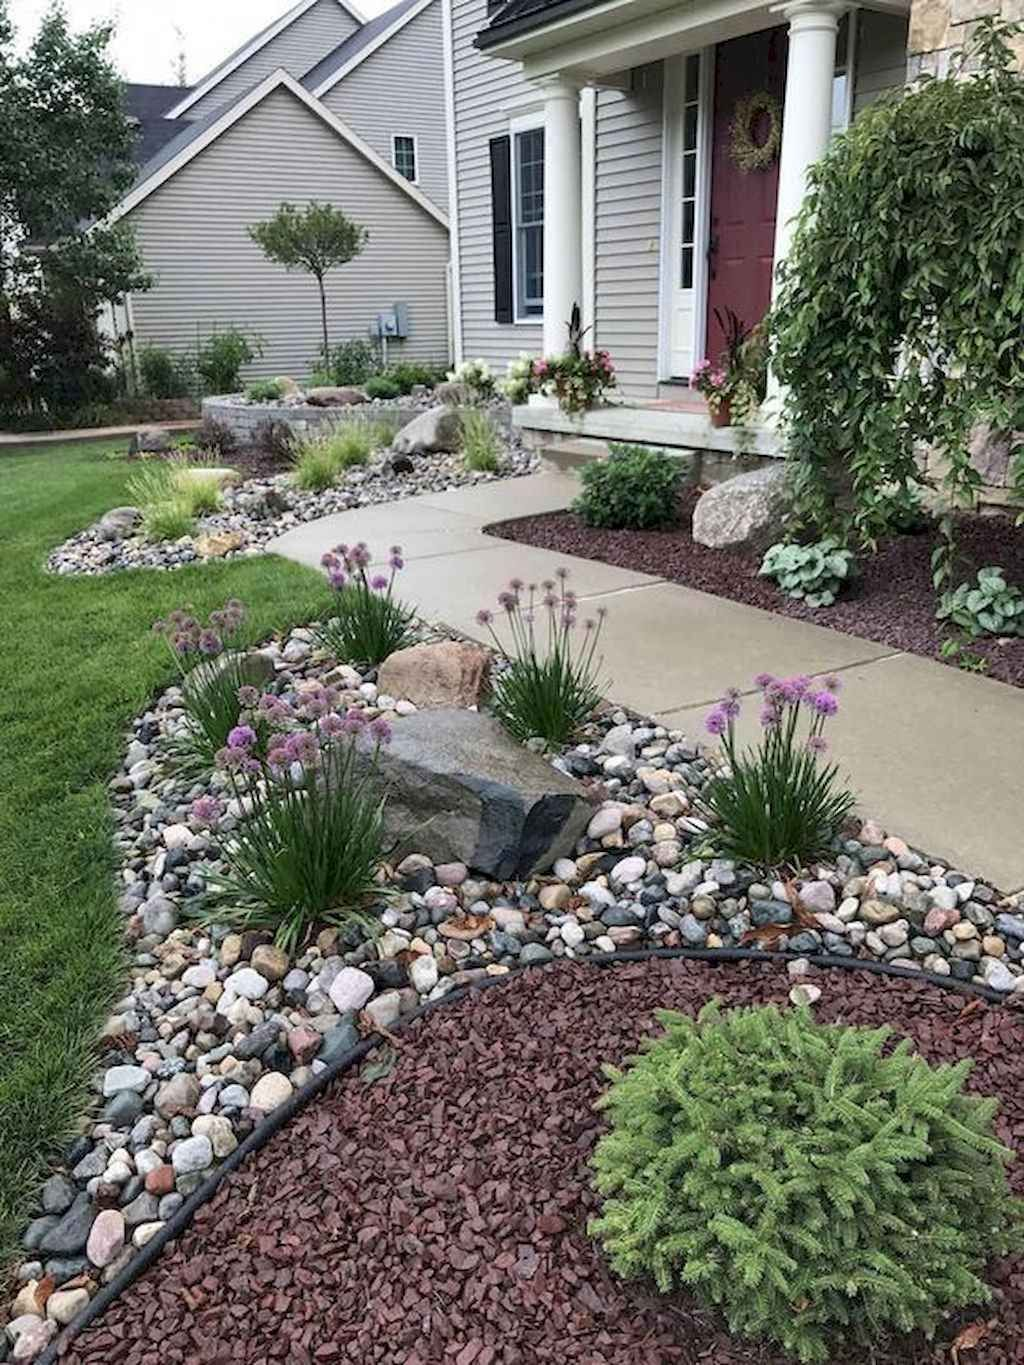 Lawn Edging Designs May Sound Like A Boring Topic You Will See There Are Some Creative And Interesting Rock Garden Design Sloped Garden Front Yard Landscaping